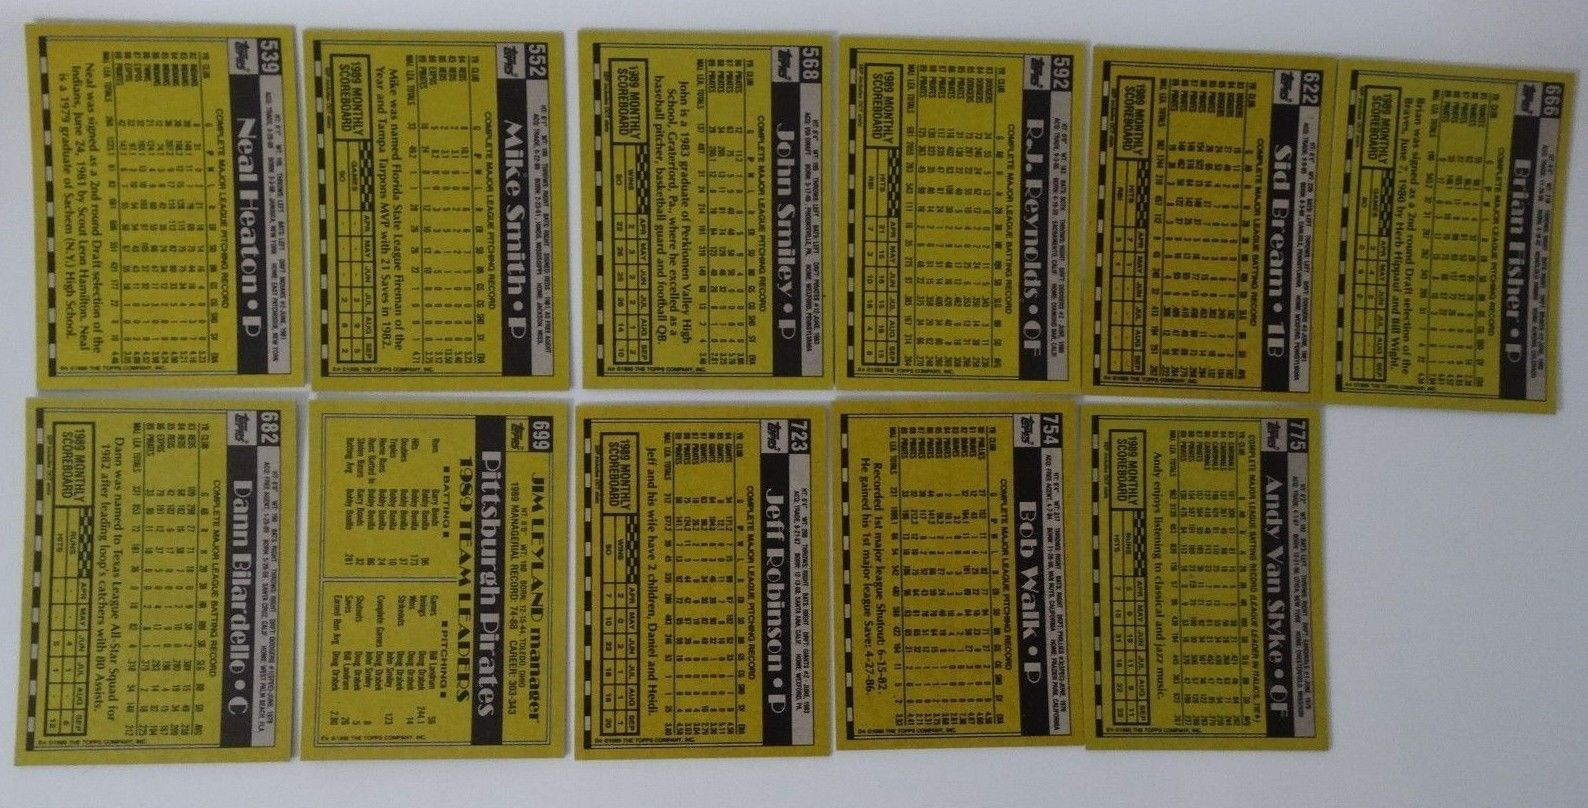 1990 Topps Pittsburgh Pirates Team Set of 29 Baseball Cards image 6